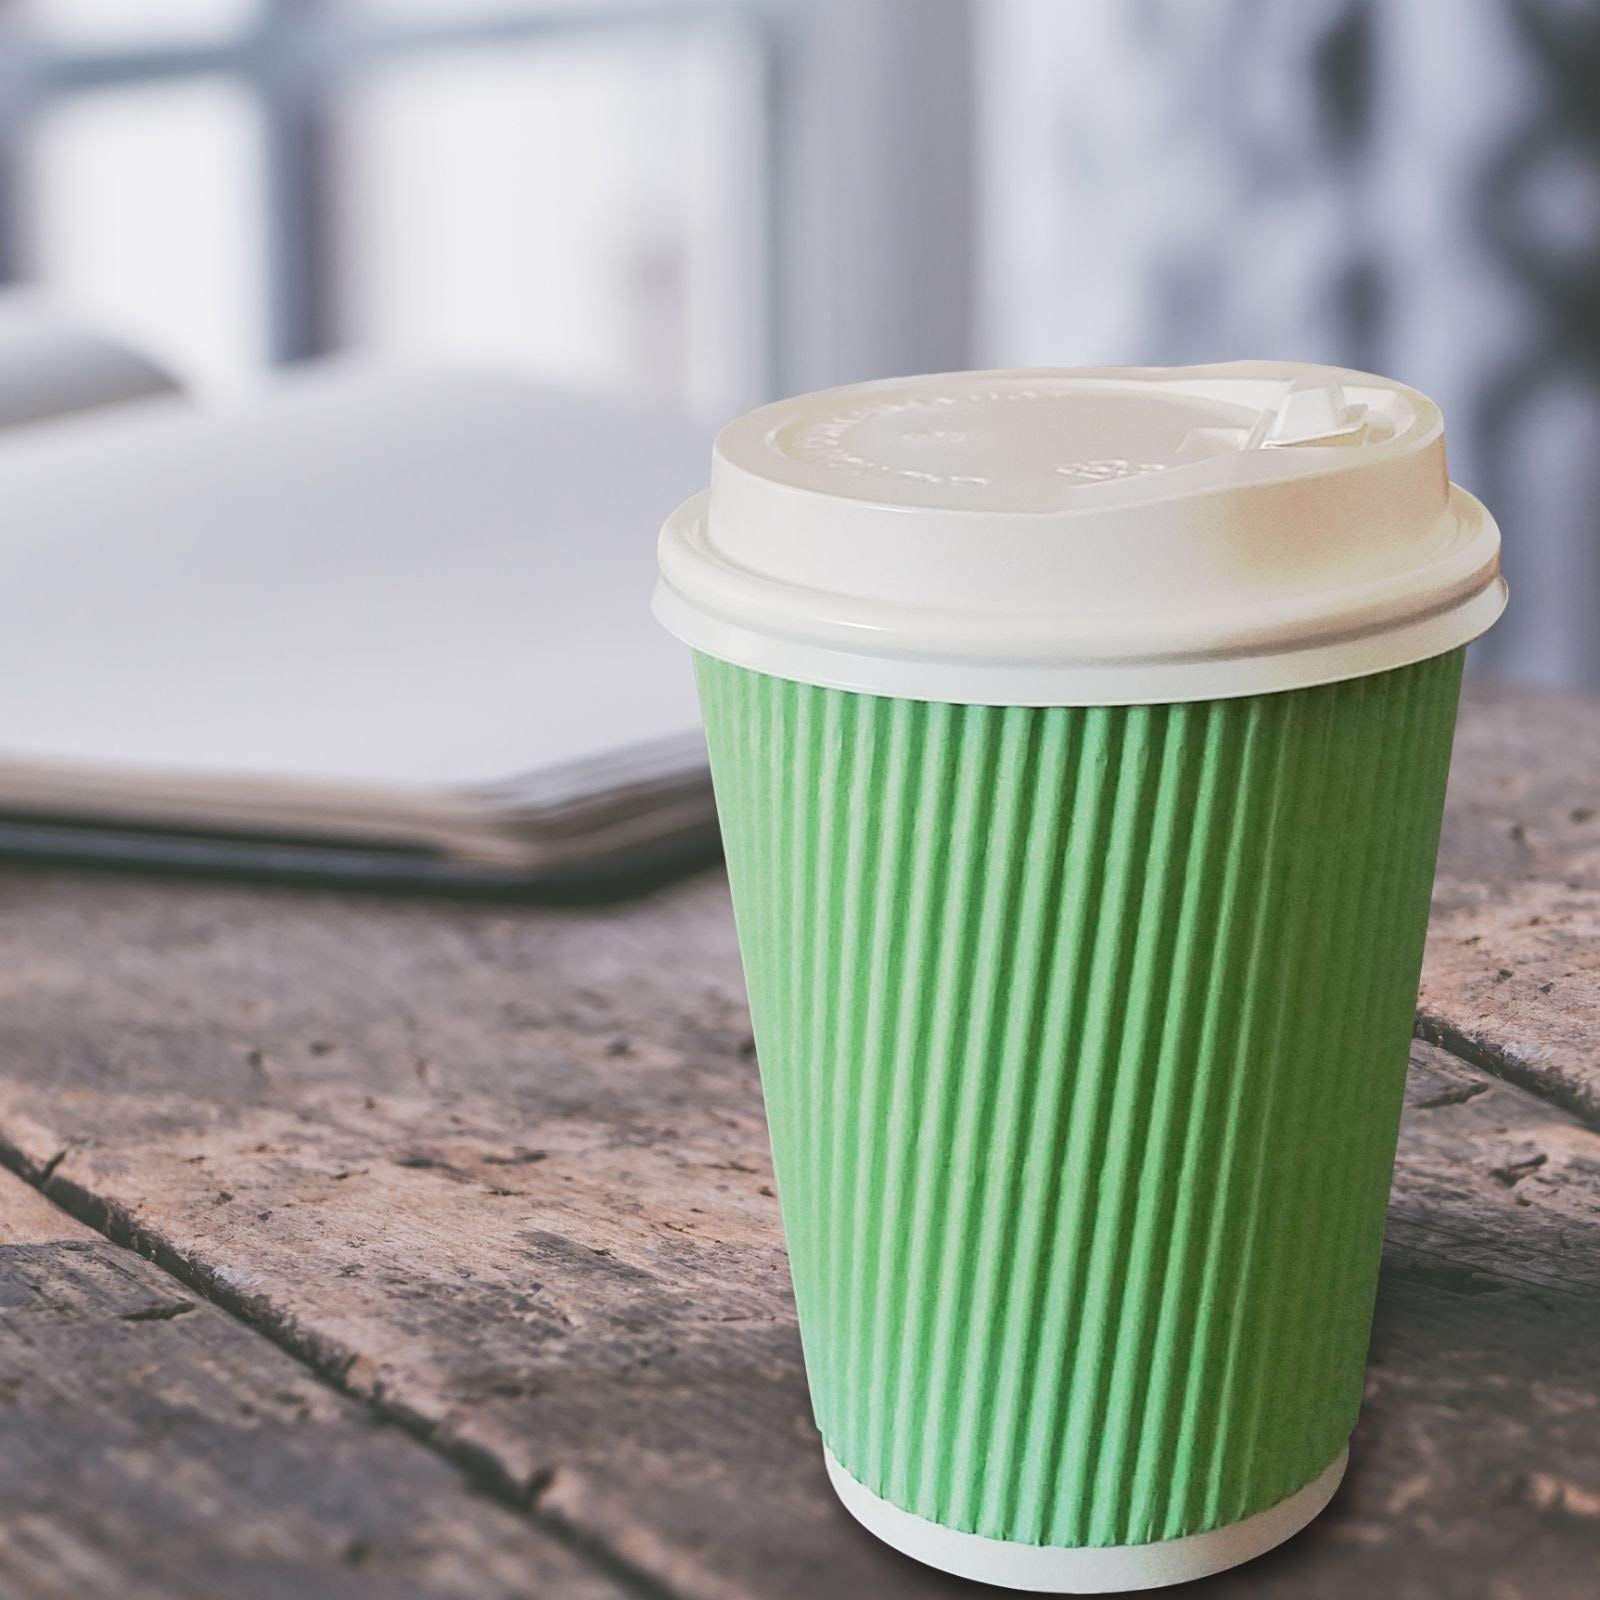 60 Pack -12 oz Premium Quality Disposable Hot Paper Coffee Cups With Lids - Ripple Wall With Insulation For Heat Protection,No Leak Lid,No Sleeves Needed,Perfect To Go,Office,Bars,Parties & Travel by FarSmart (Image #5)